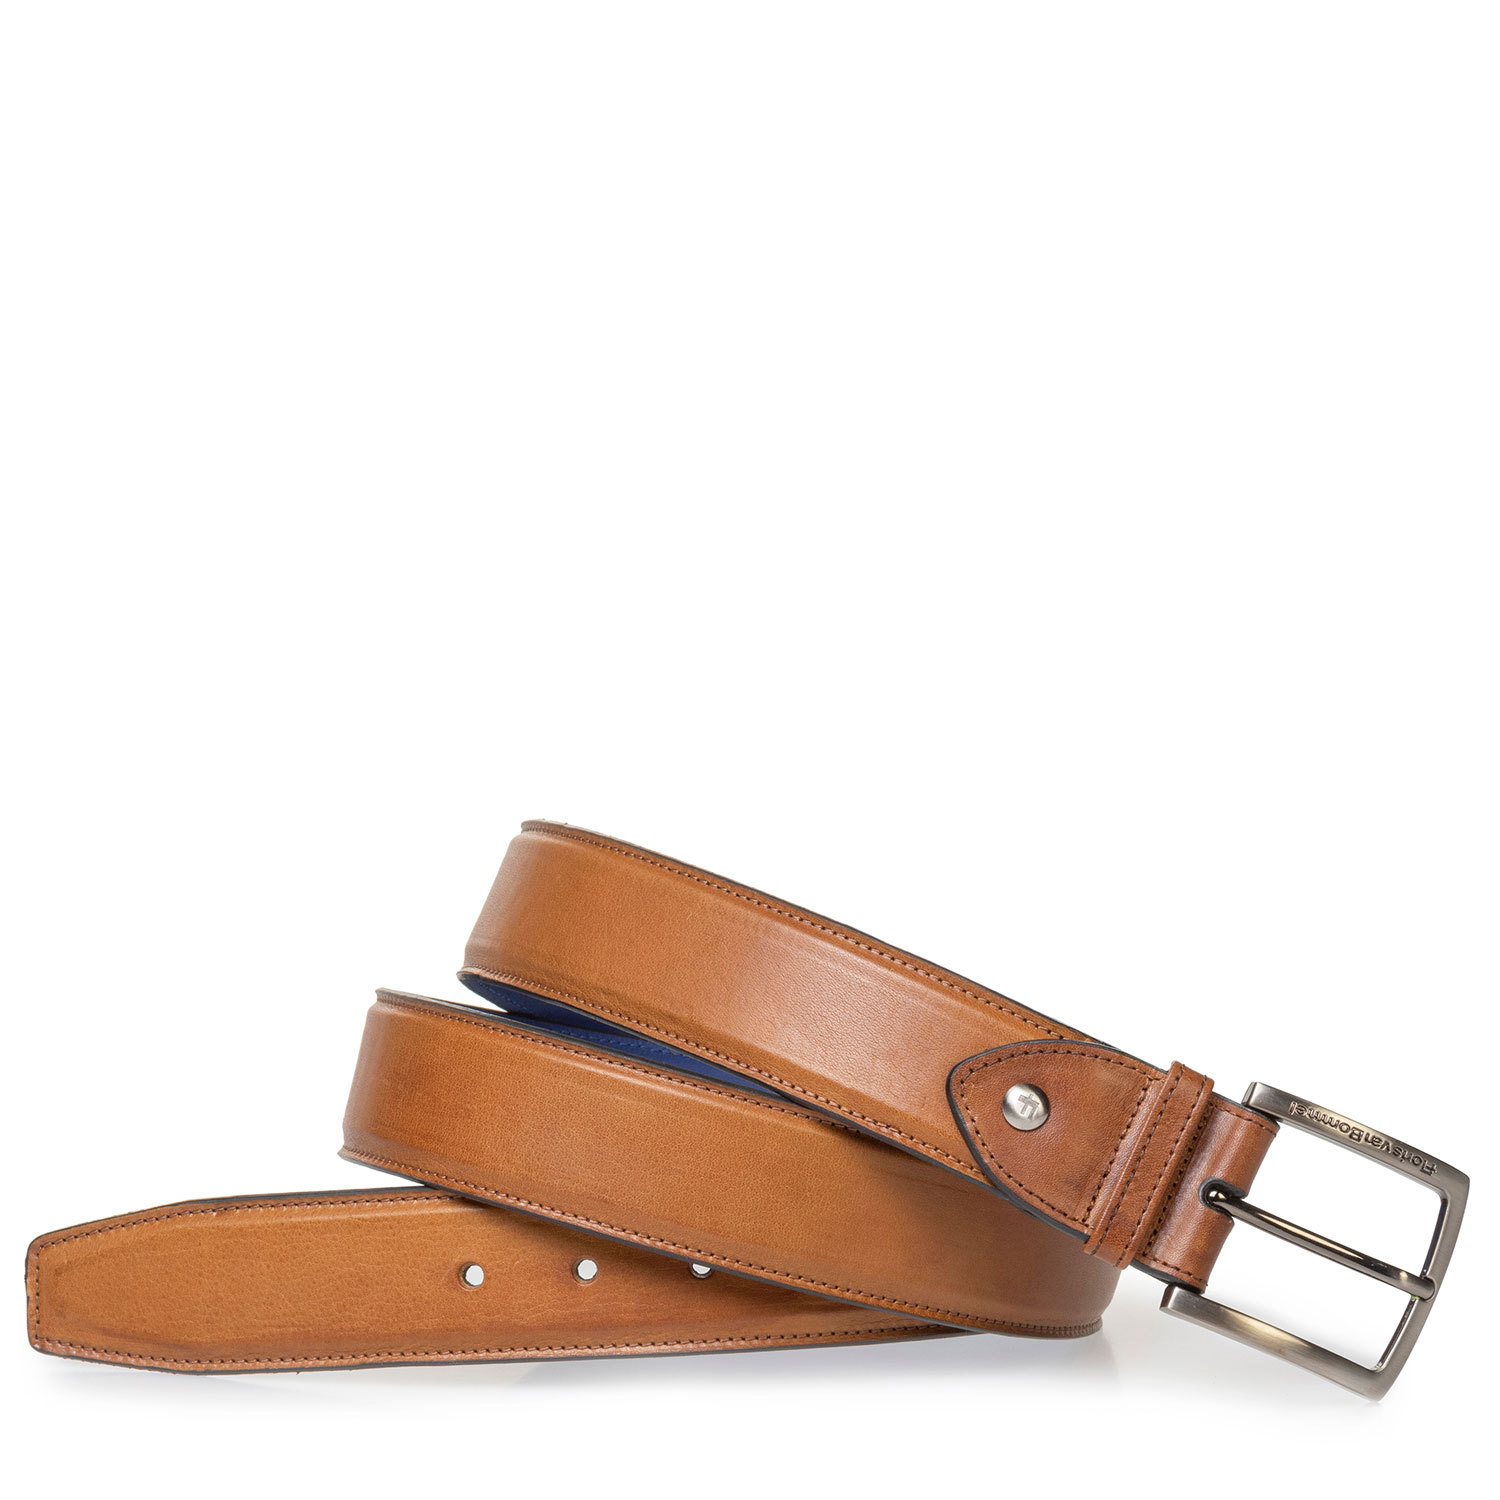 75189/60 - Cognac-coloured leather belt